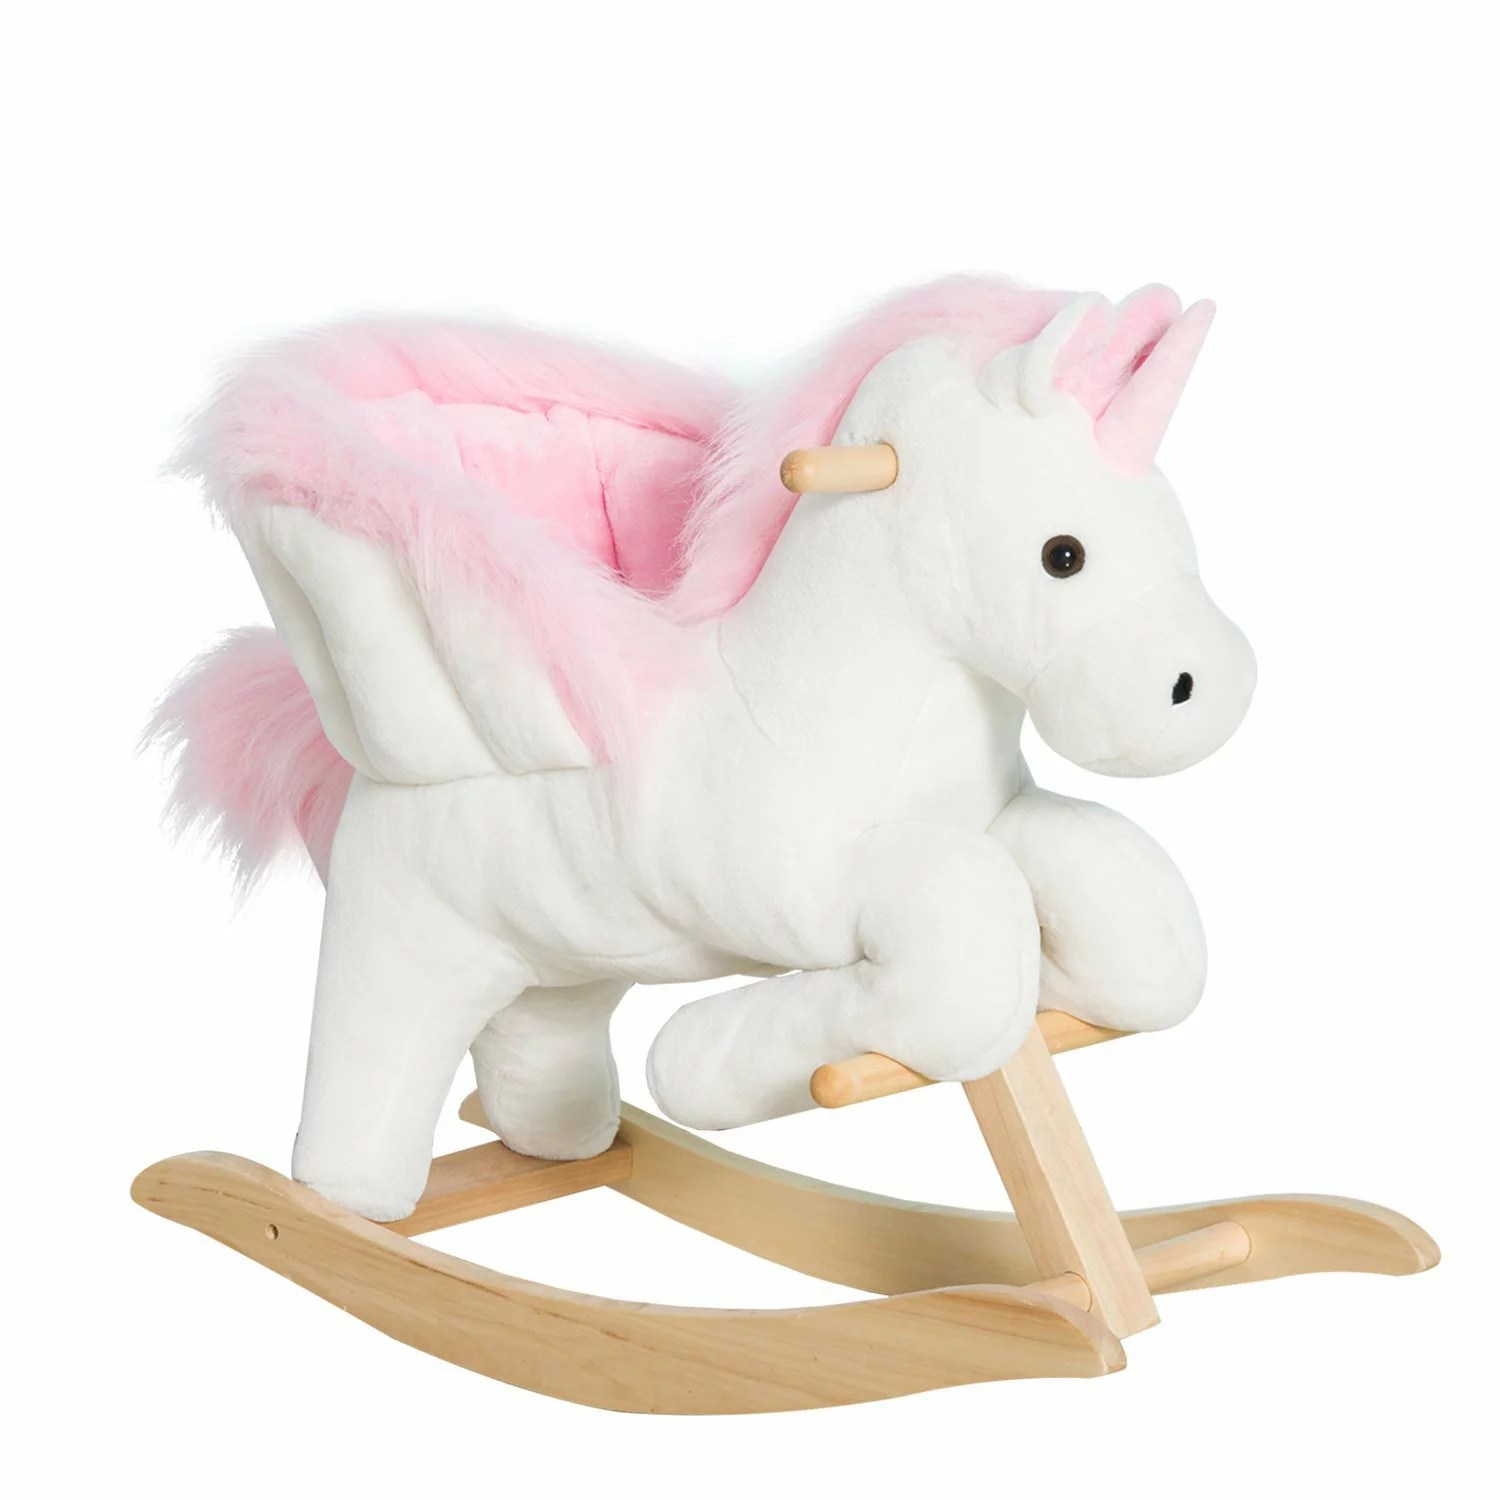 children s stuffed animal chairs how much fabric do i need to reupholster a chair aosom qaba kids plush toy rocking horse unicorn